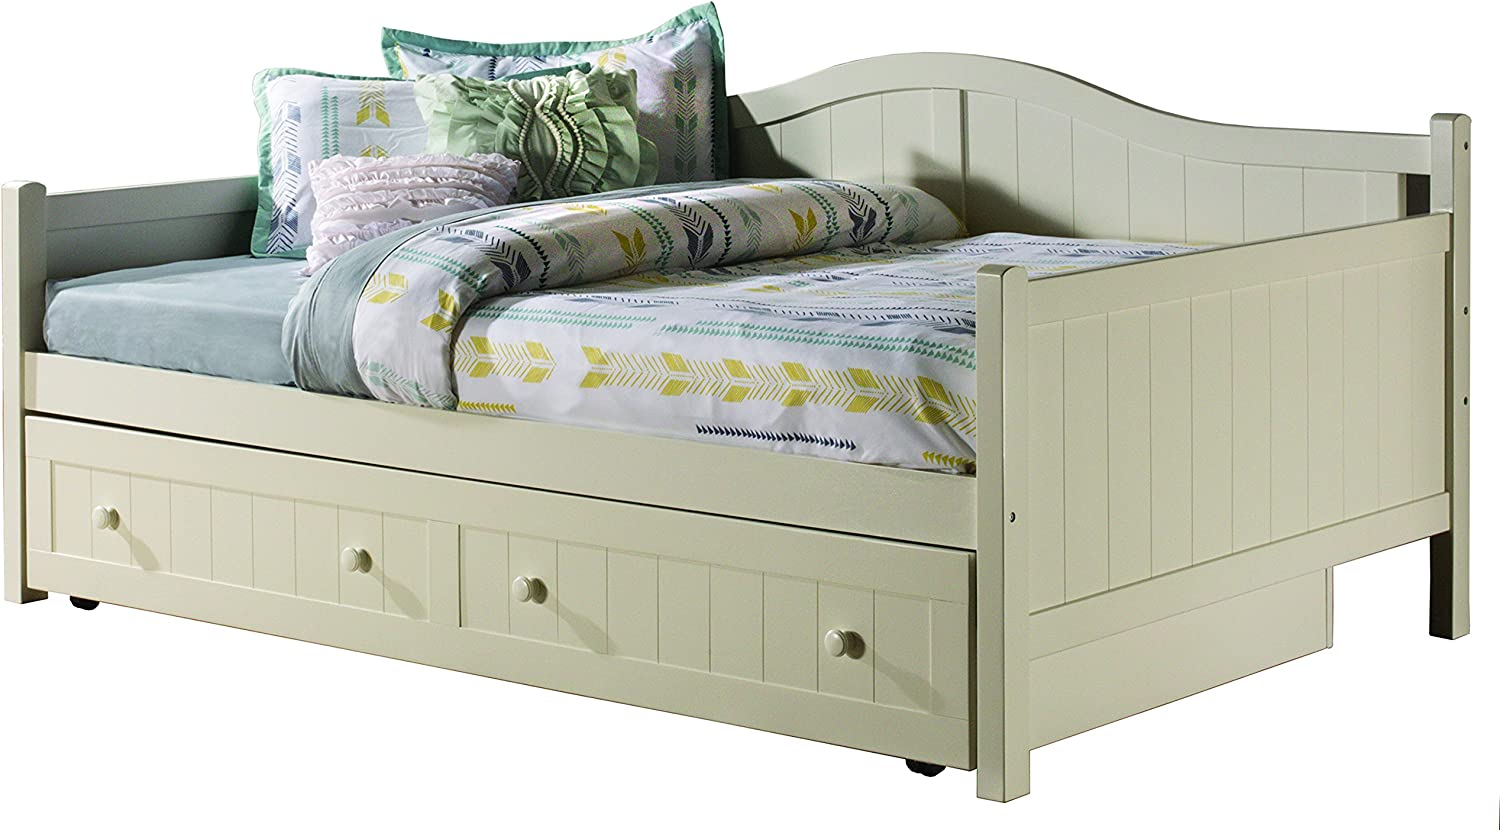 - Amazon.com: Hillsdale Furniture Staci Full Sized Daybed With